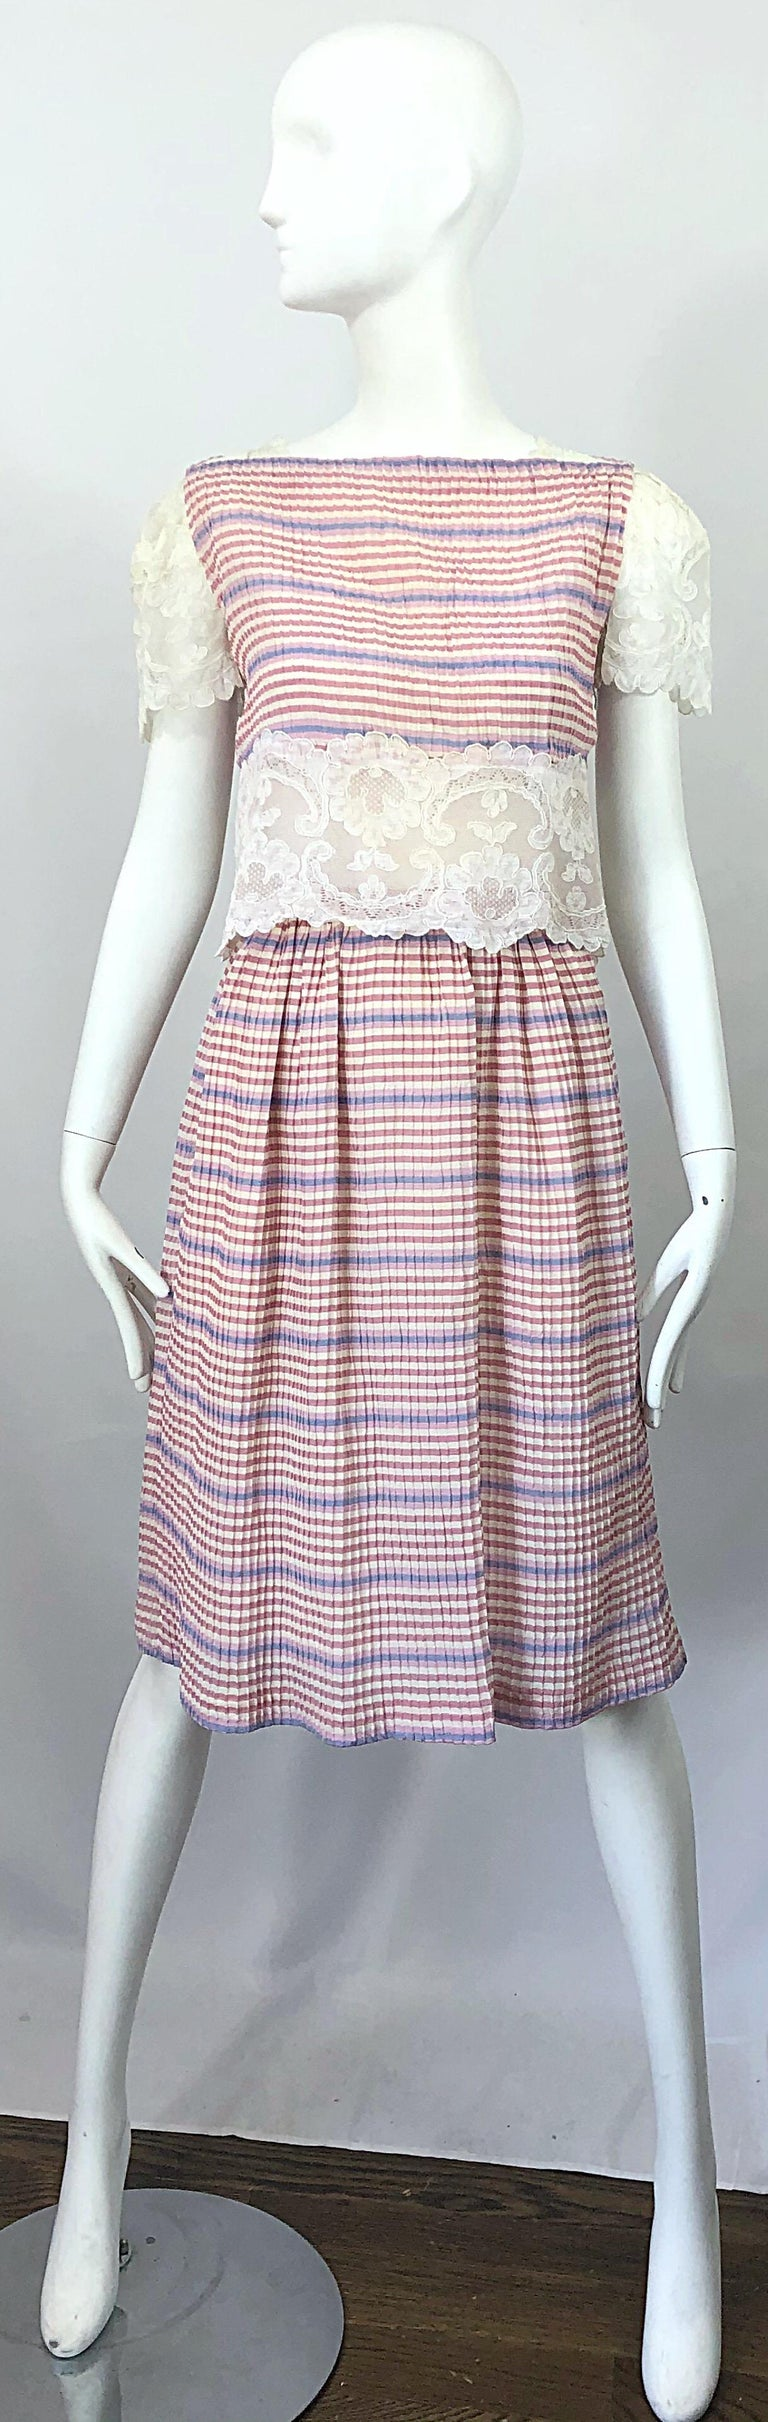 Pretty vintage BOB MACKIE (late 70s) stripes silk and lace crop top and skirt ensemble! Features pleated silk with stripes printed in purple, pink and ivory. White lace cut-out at waist is lined in nude chiffon. Lace cut-outs at each shoulder as